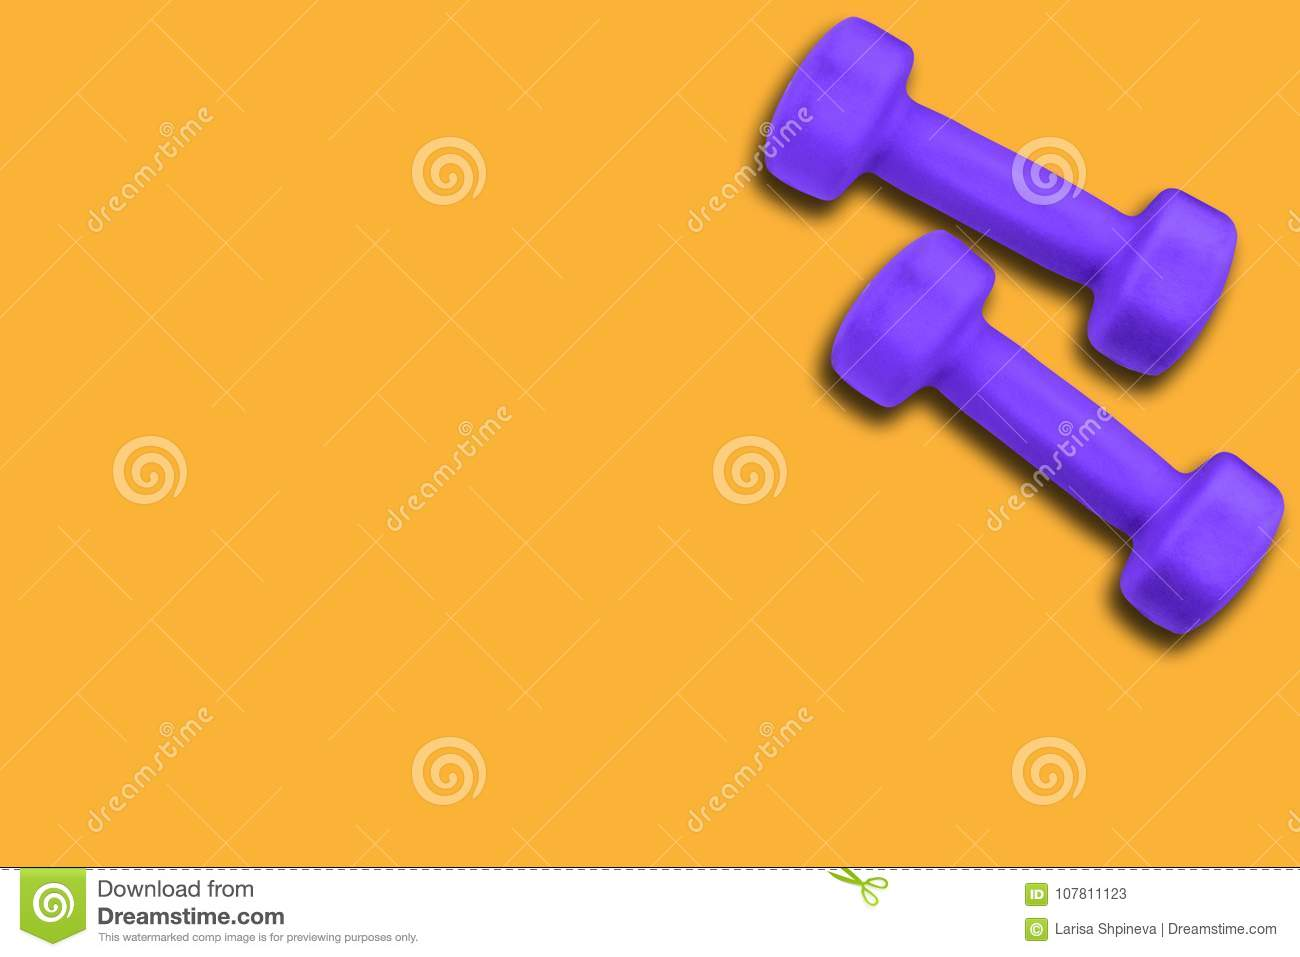 Pair Of Dumbbells Of Color Ultra Violet 18-3838 On A Yellow ...